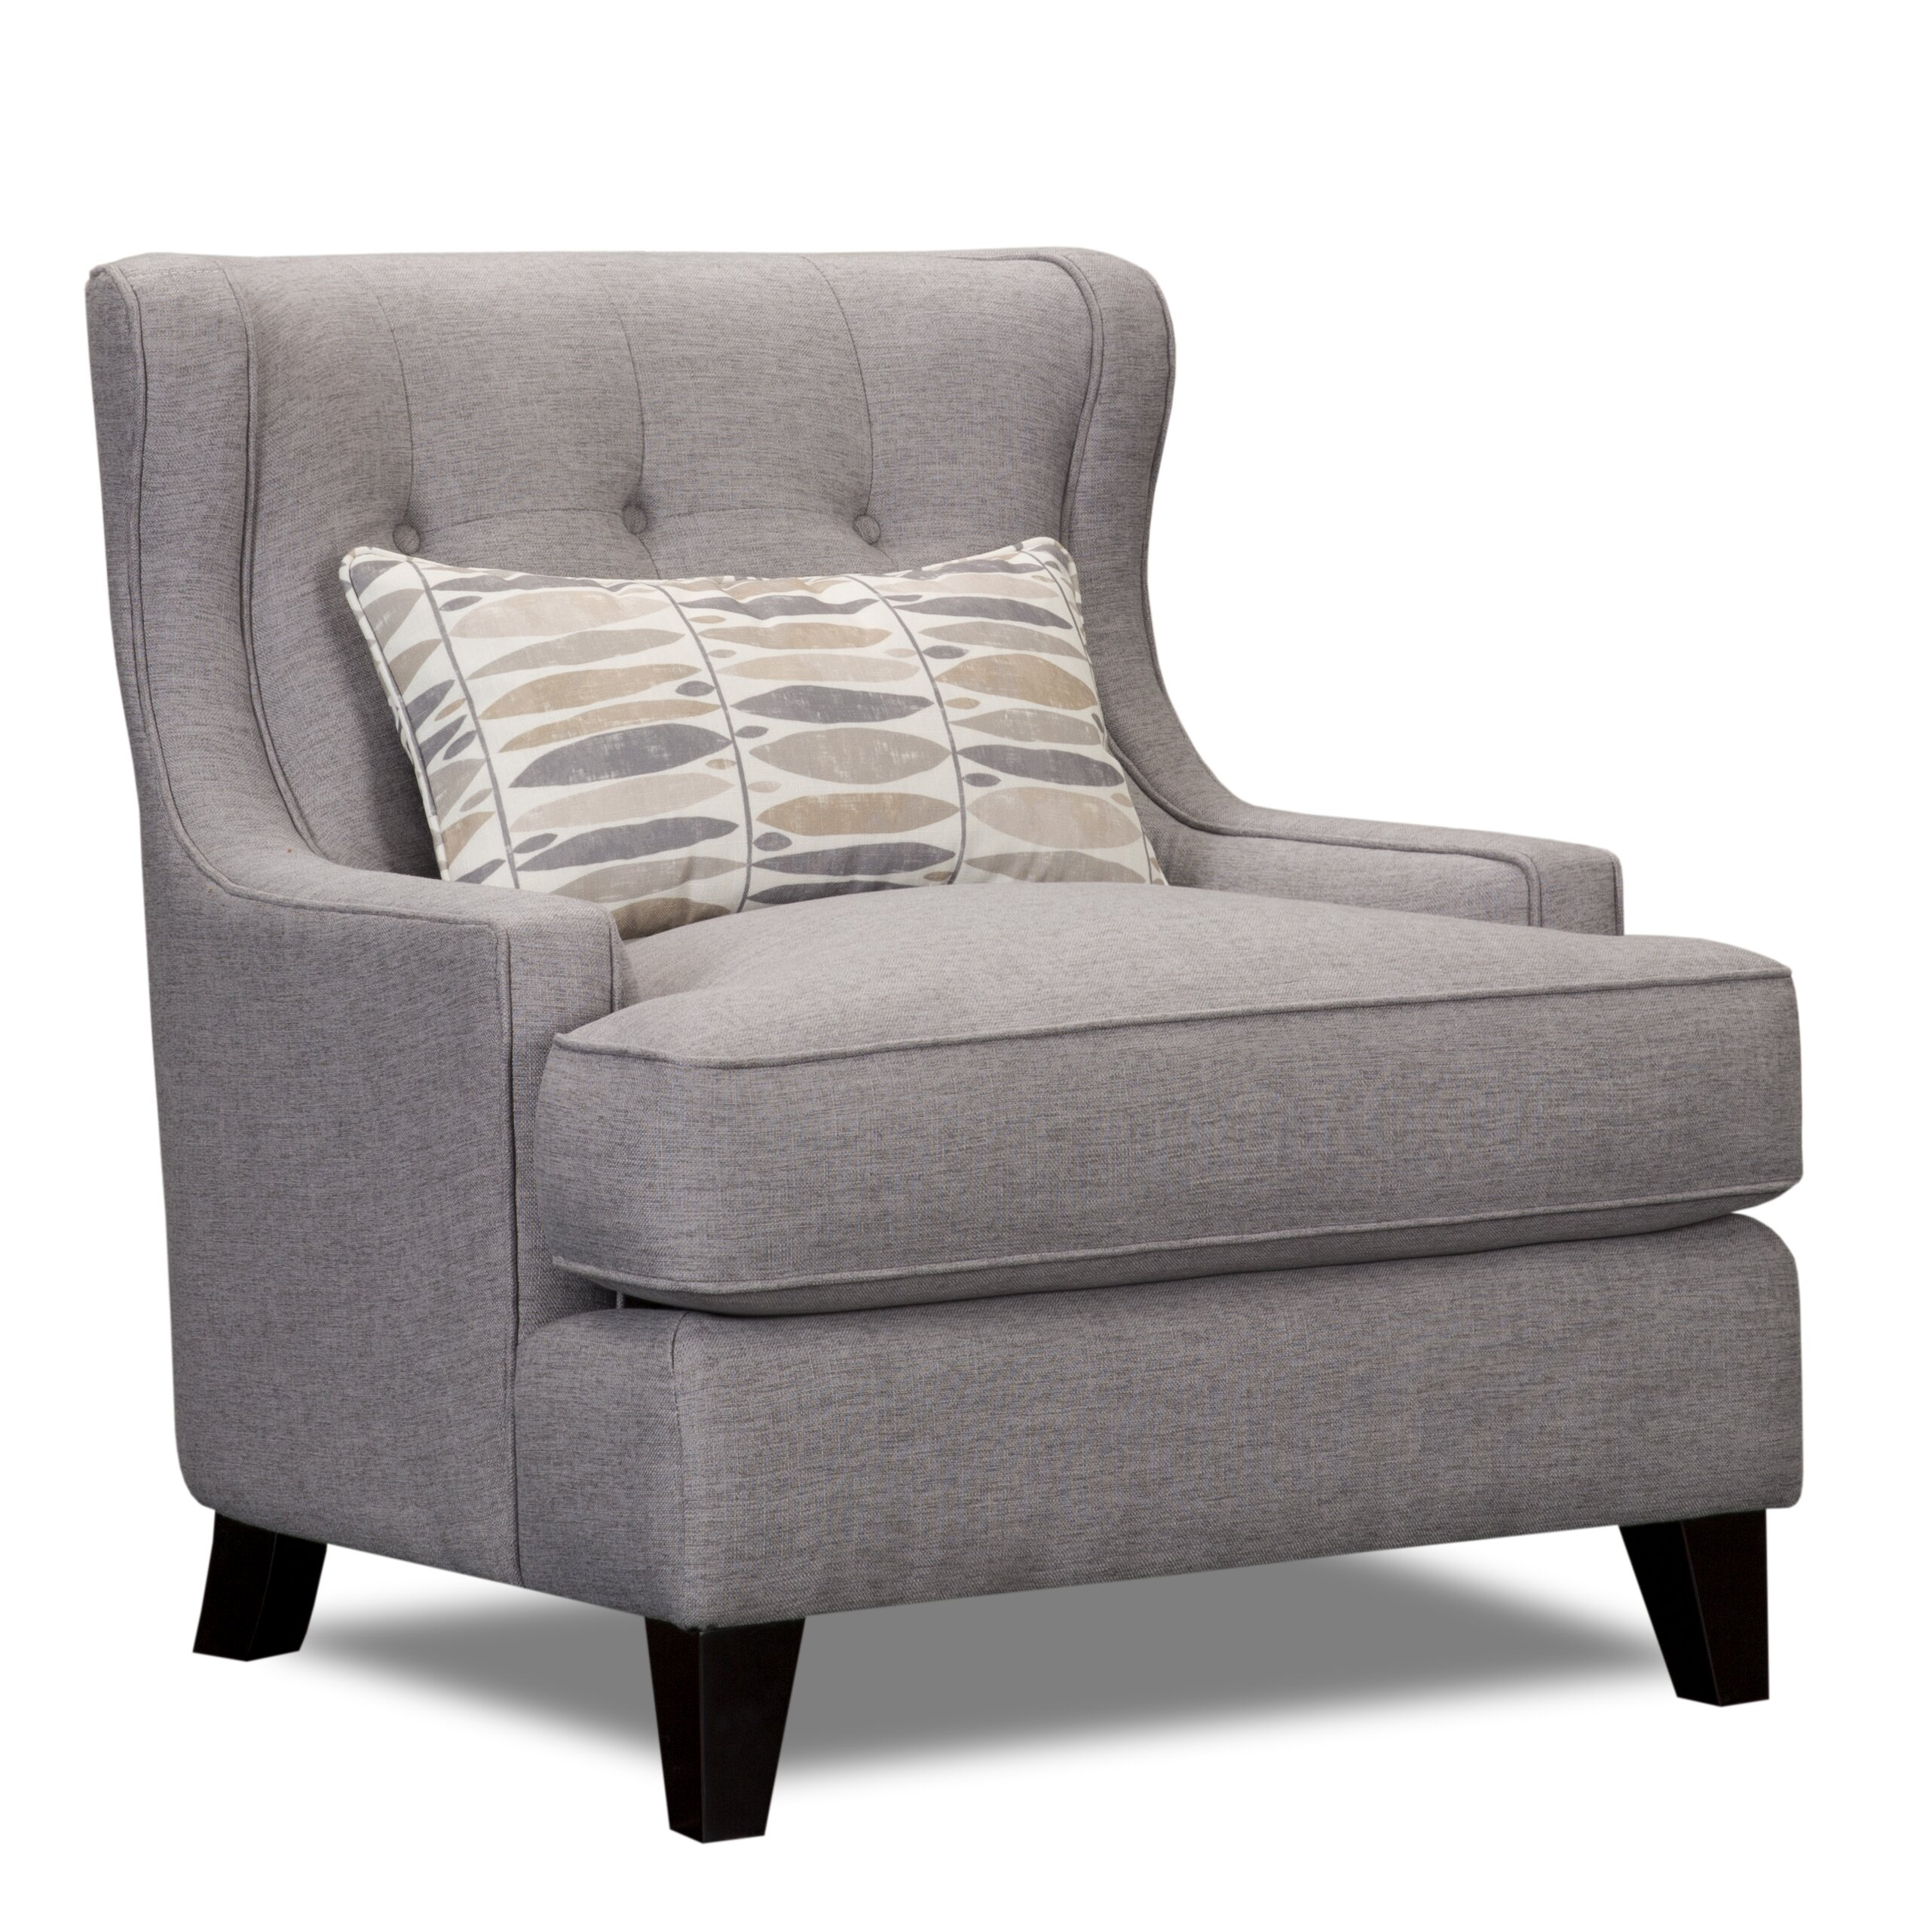 Laurel Foundry Modern Farmhouse Carson Wingback Armchair